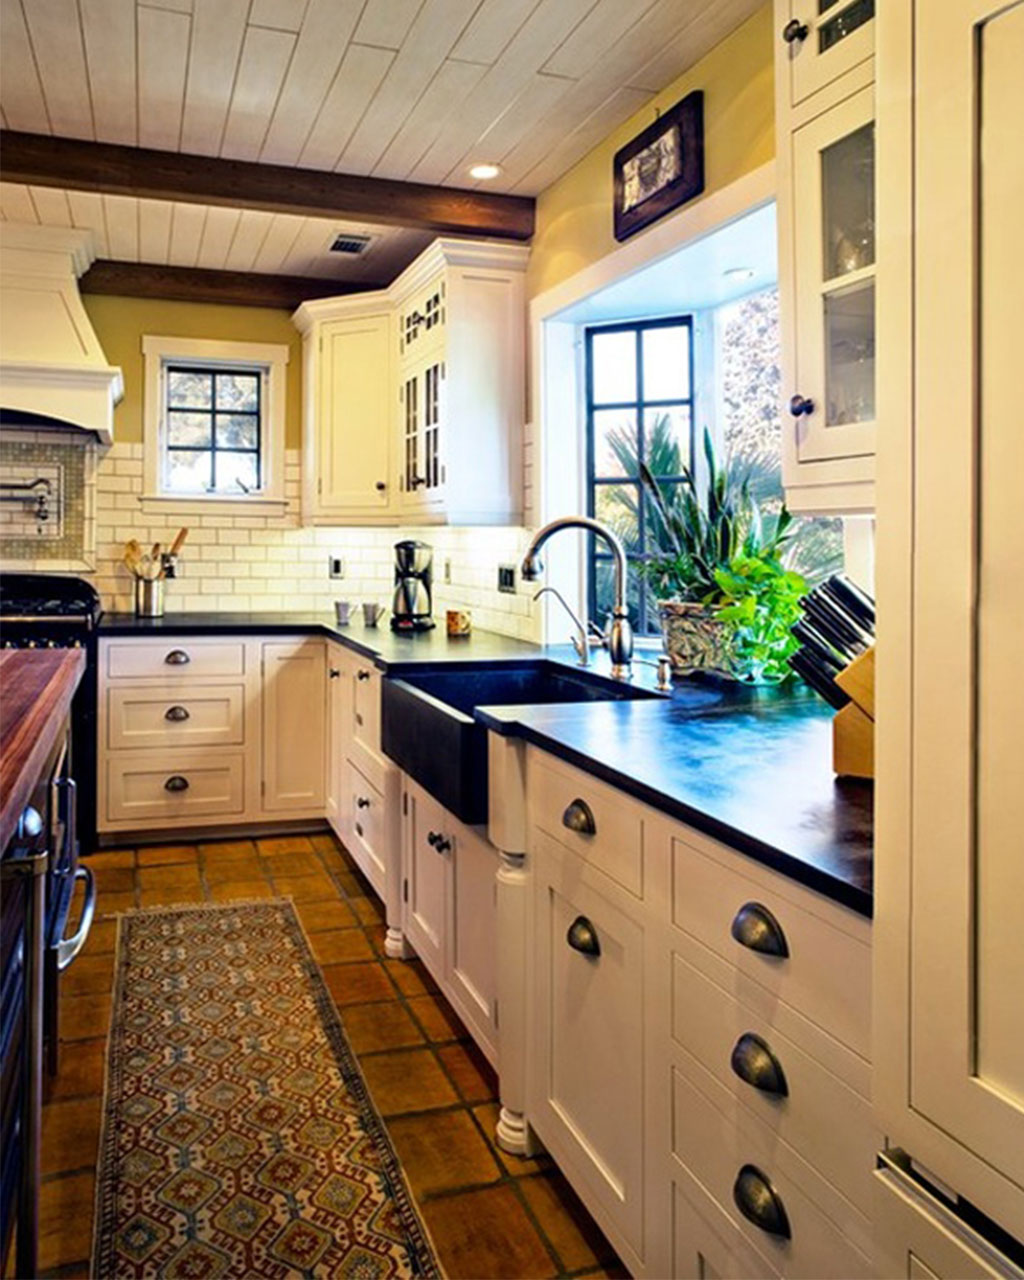 Kitchen trends 2015 loretta j willis designer for Latest trends in home decor 2015